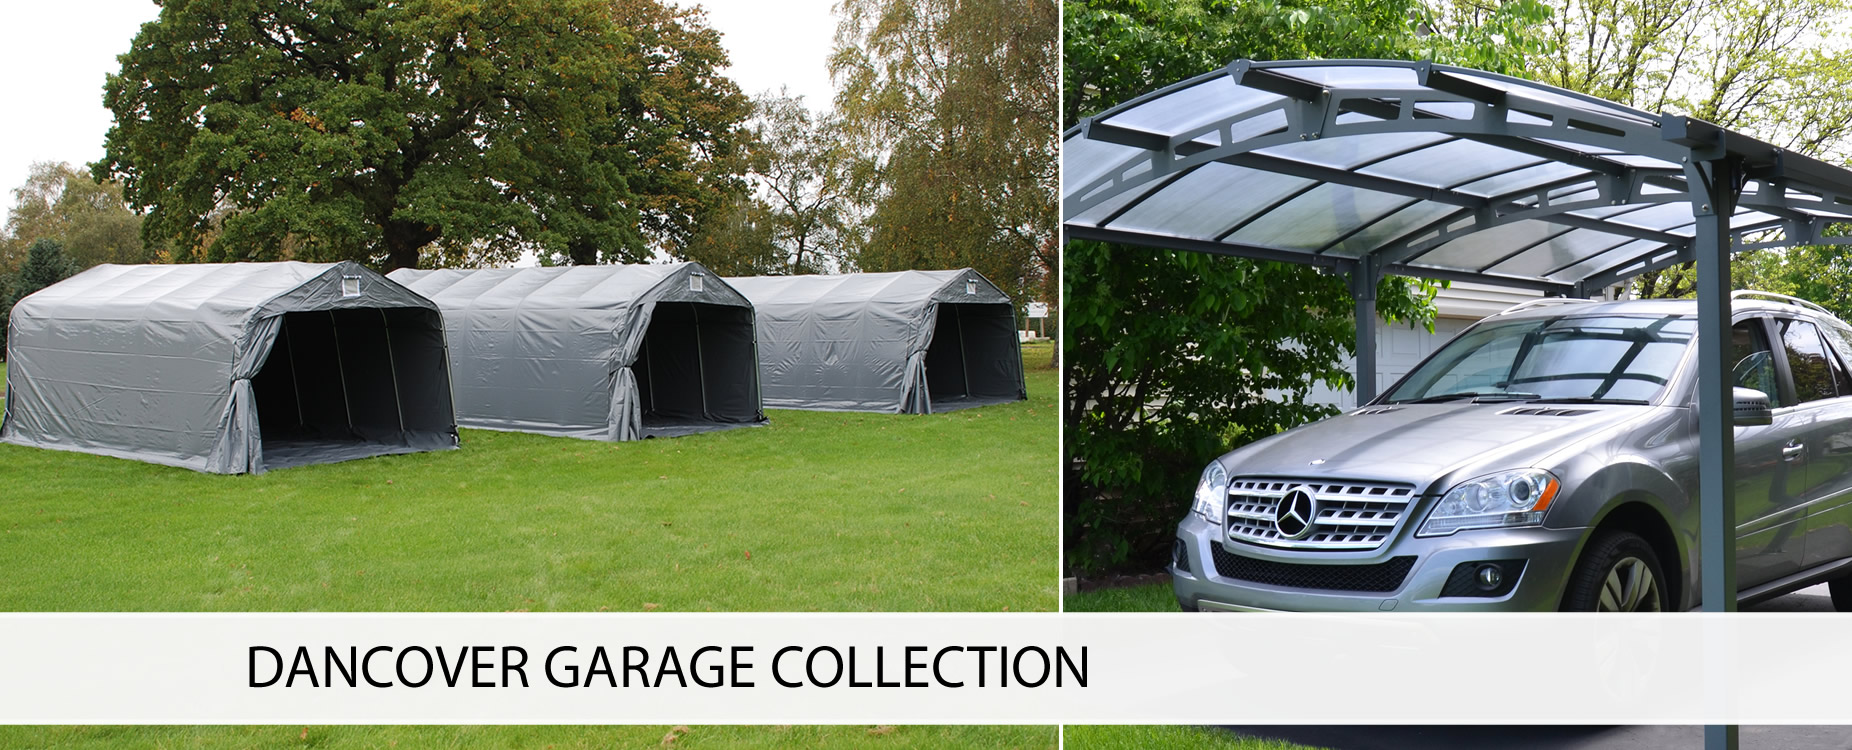 Portable garages, garage tents, folding garages, carports etc.